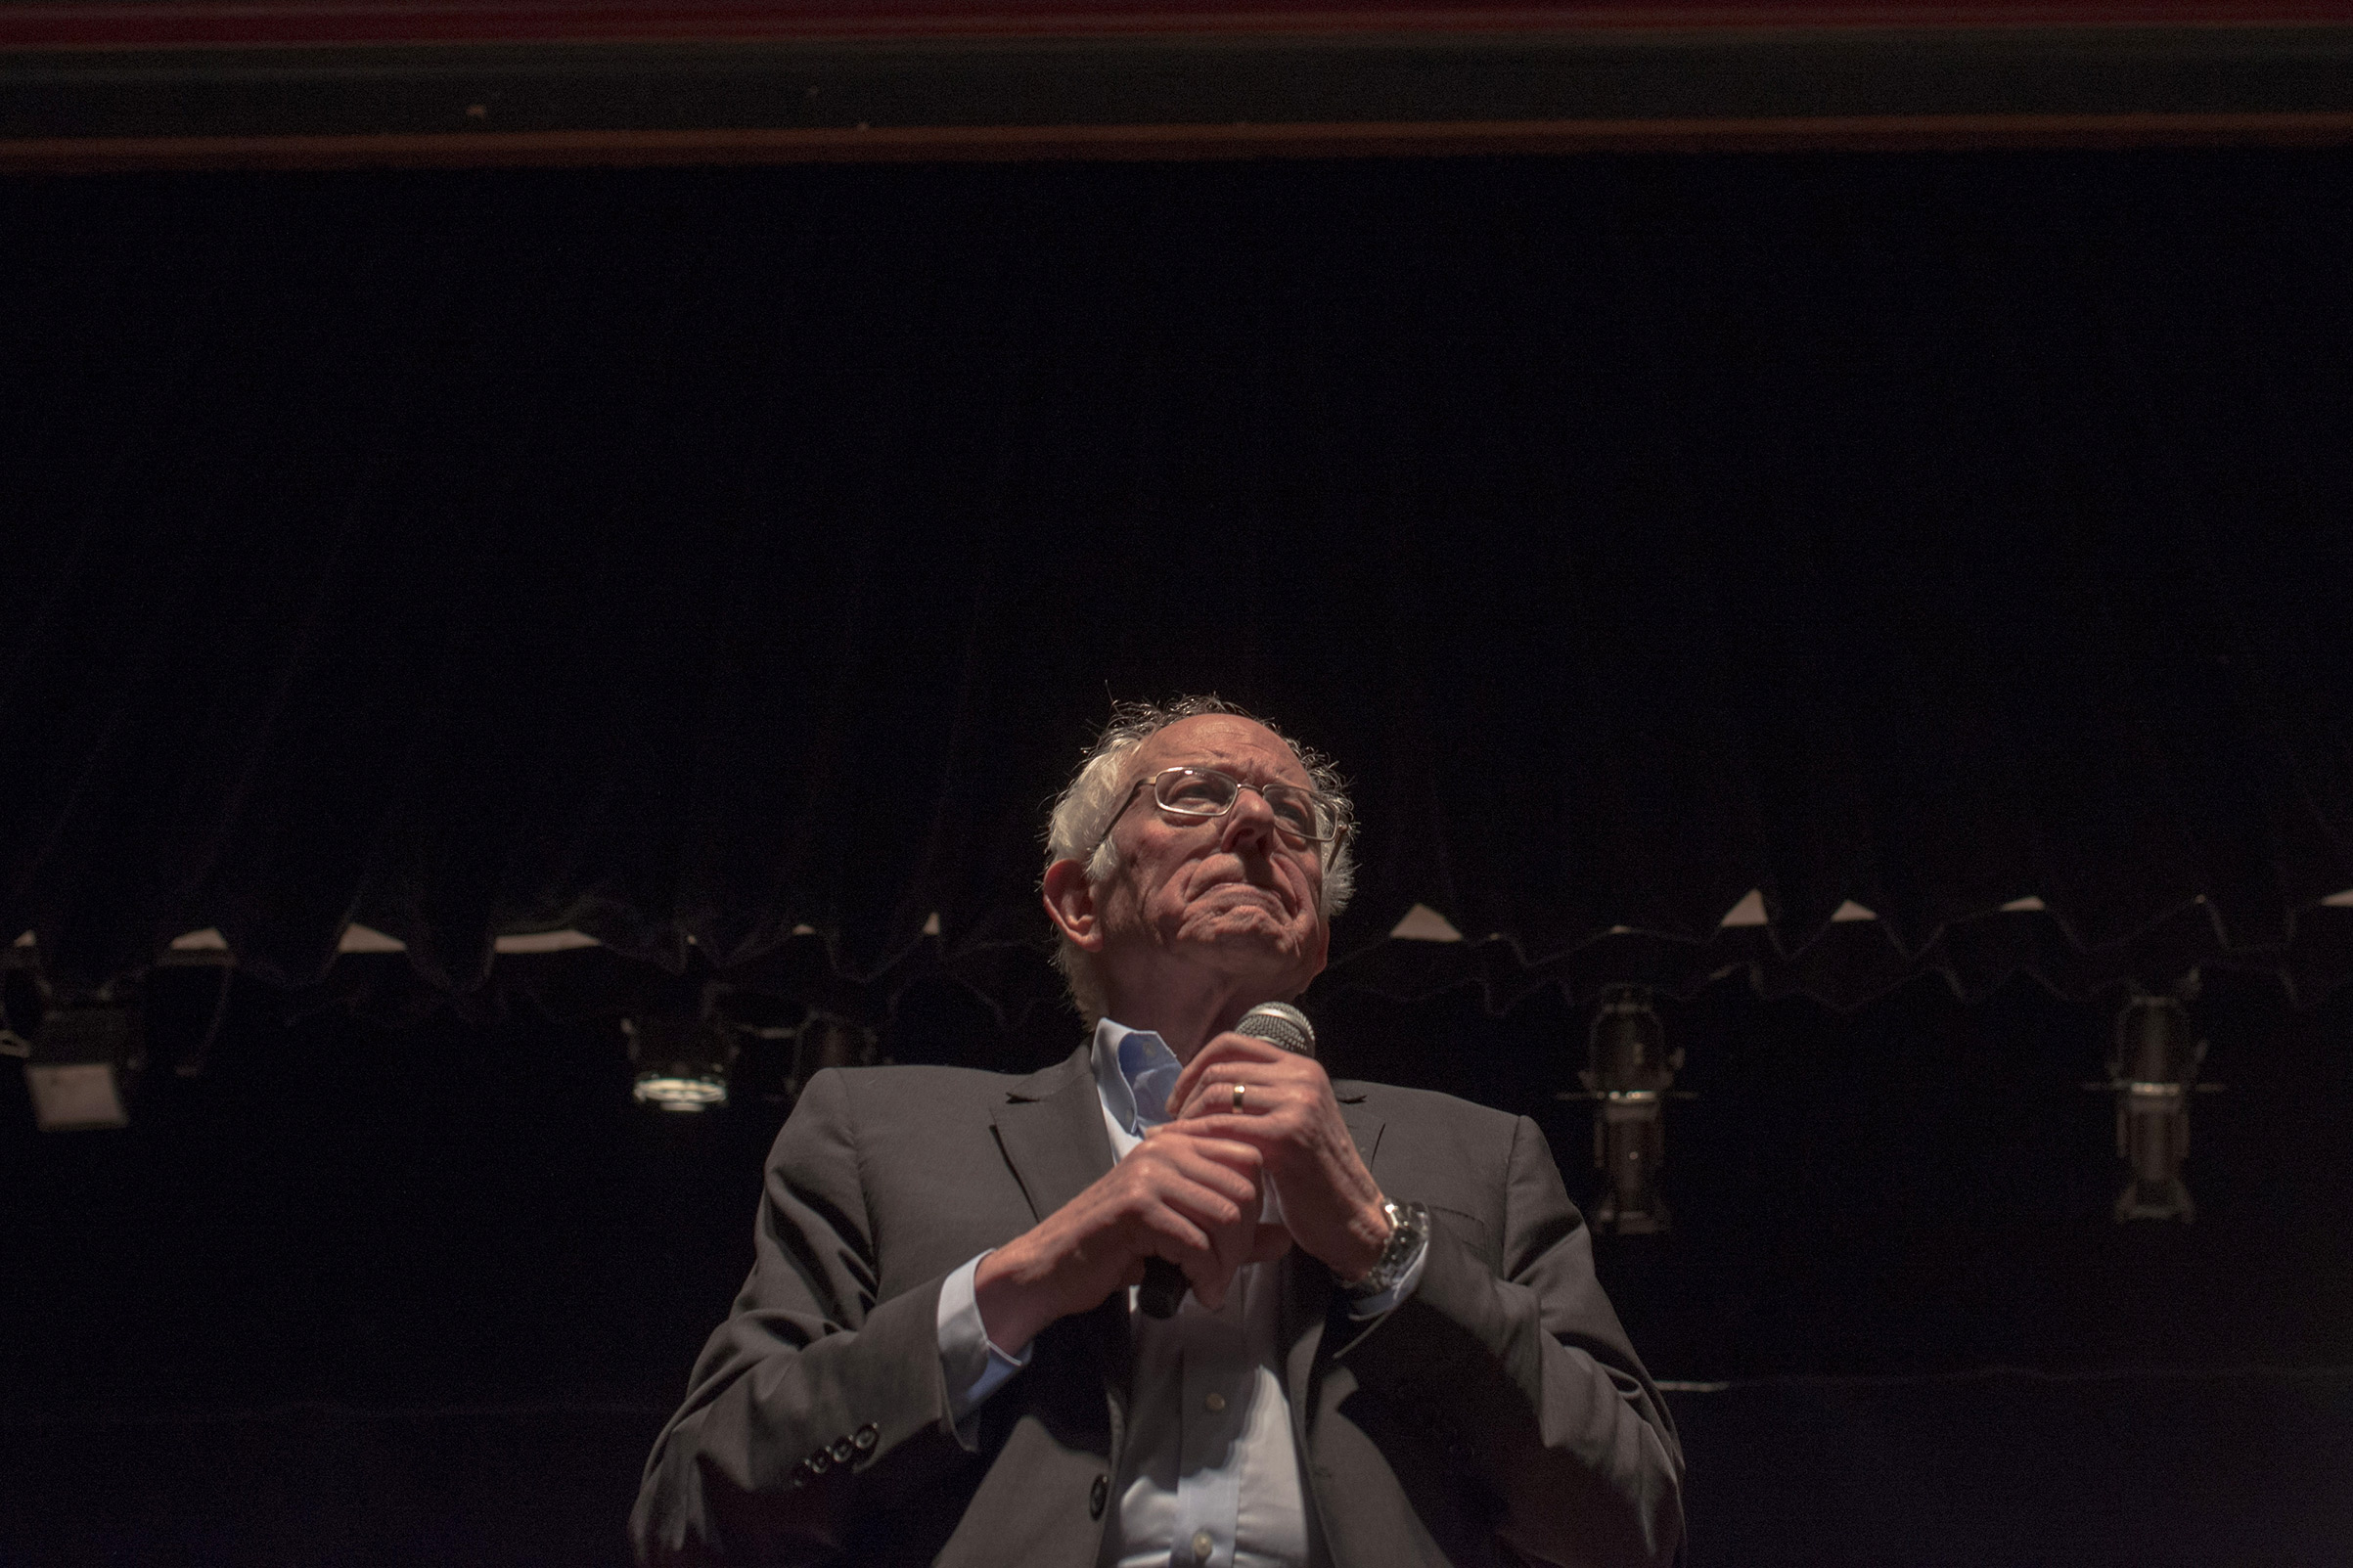 Democratic presidential candidate Sen. Bernie Sanders (I-VT) at a campaign rally in Ames, Iowa, Jan. 26, 2020.